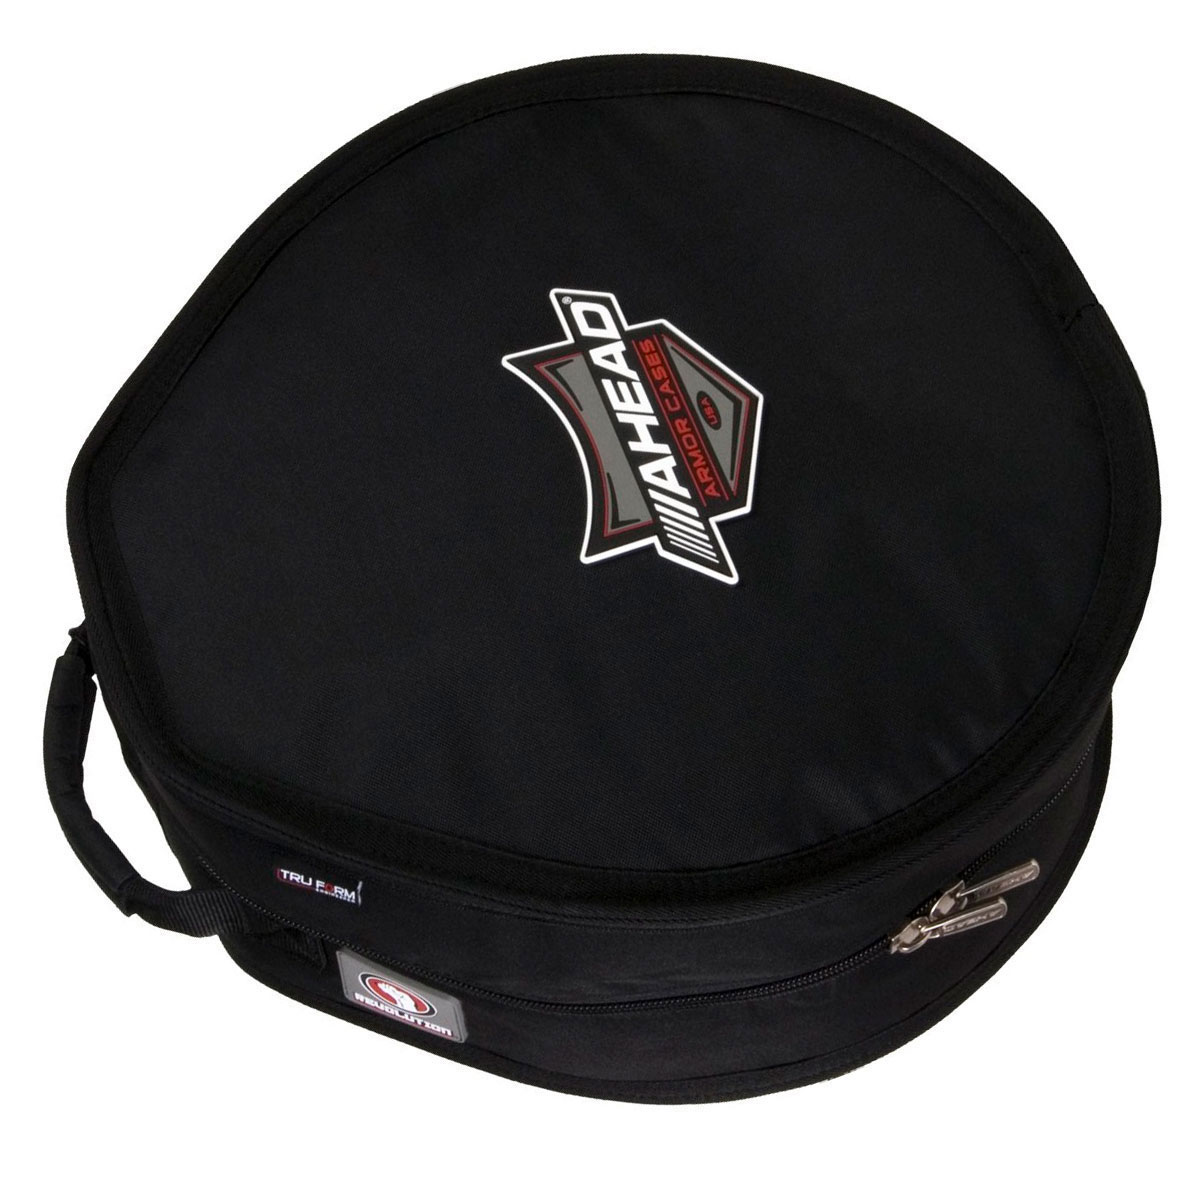 "Ahead Armor 5"" (Deep) x 10"" (Diameter) Piccolo Snare Case"